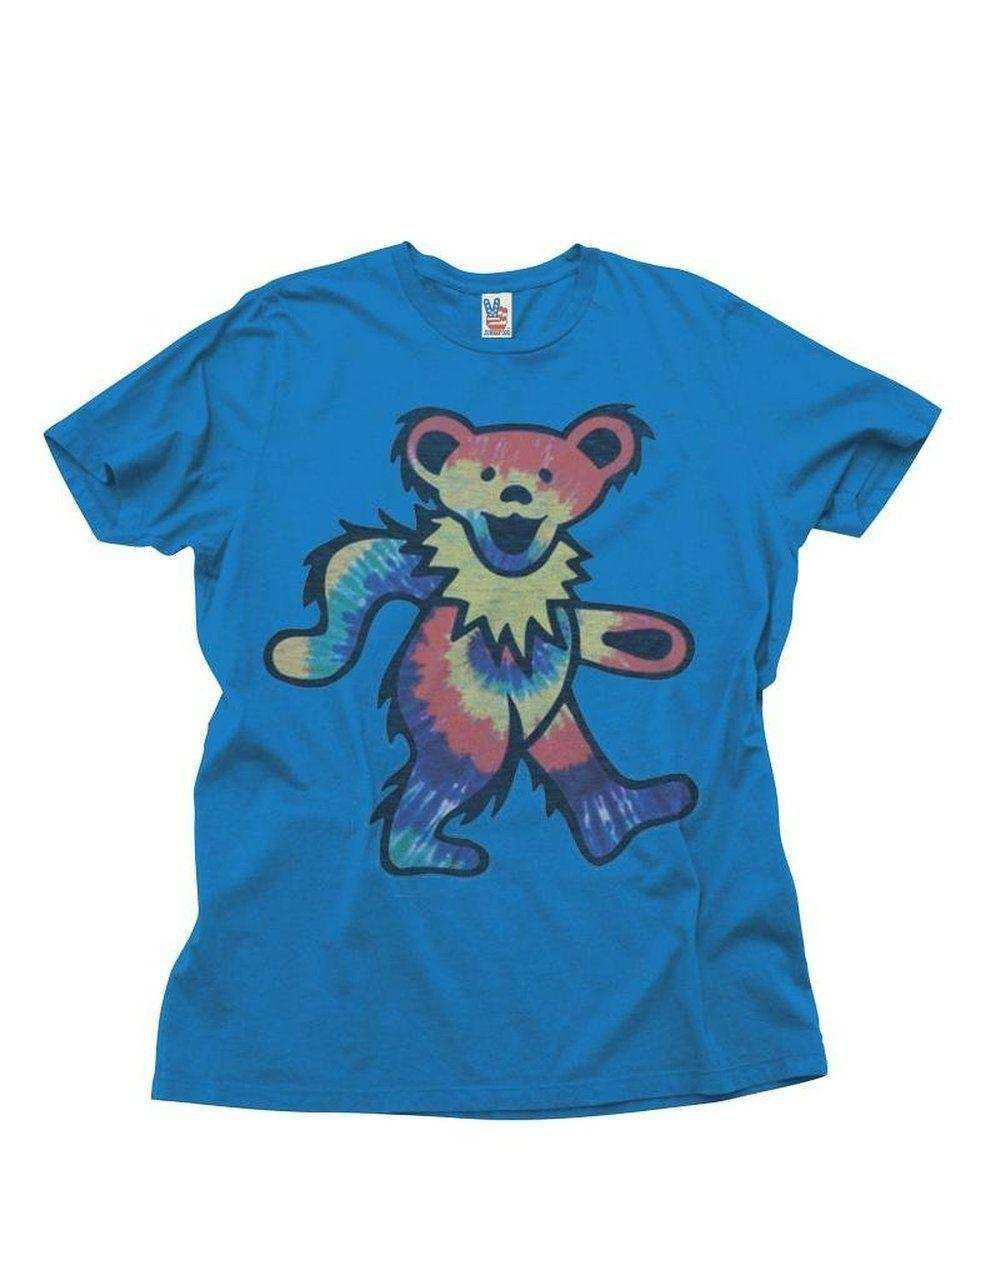 1f7414203 Details Zu Junk Food Grateful Dead Dancing Bear Adult Royal Blue T Shirt  Funny Unisex Casual Gift Daily T Shirts Printable T Shirts From  Lukehappy11, ...